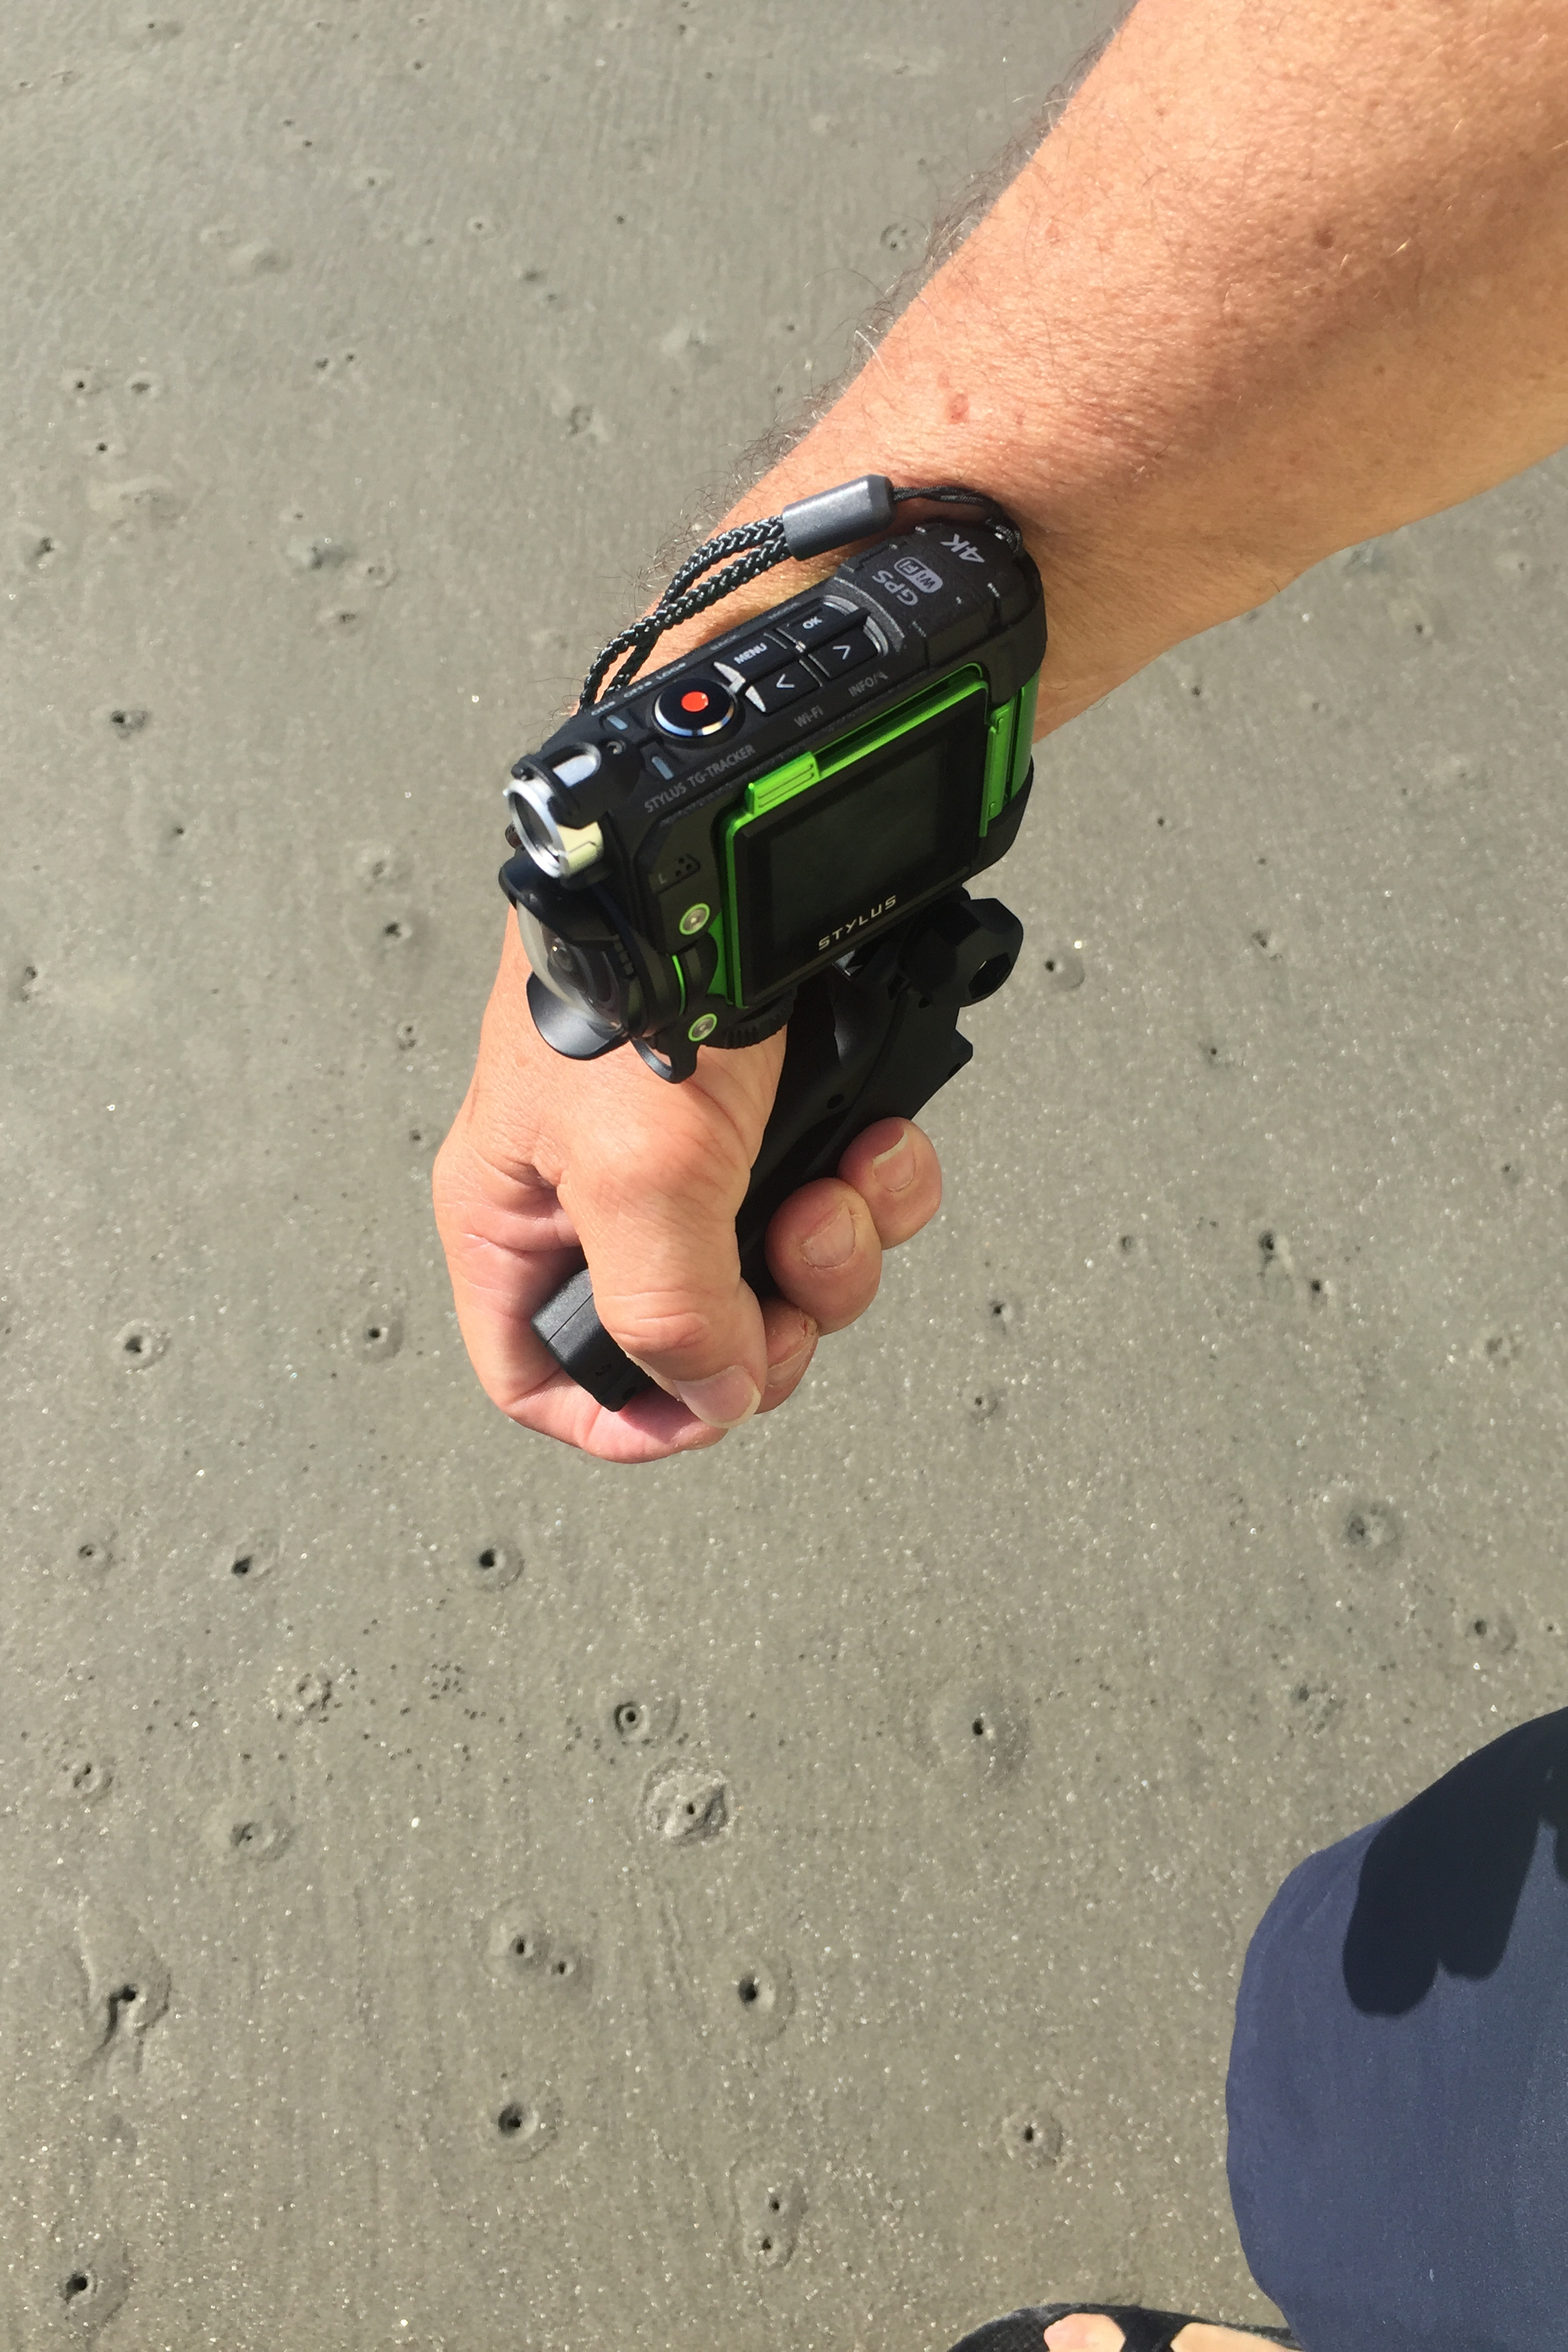 Holding the Tracker with the grip in this fashion allows you to video what's in front of you somewhat surreptitiously.